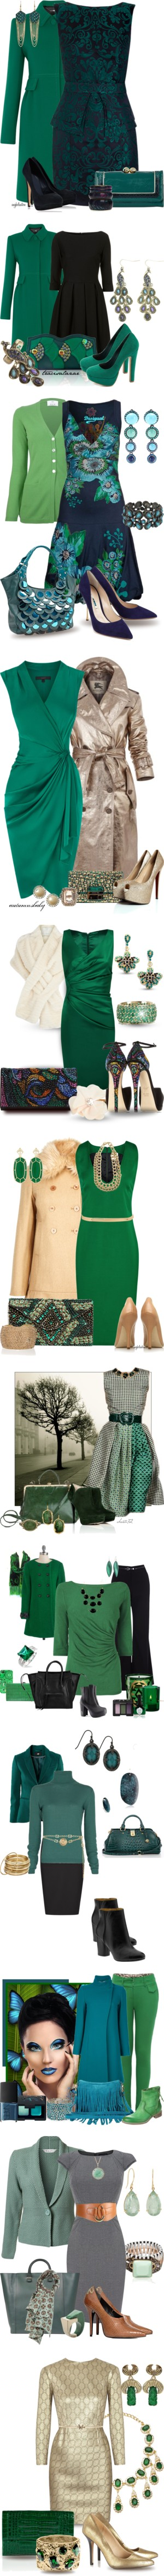 """""""Season of Green"""" by glinwen ❤ liked on Polyvore"""